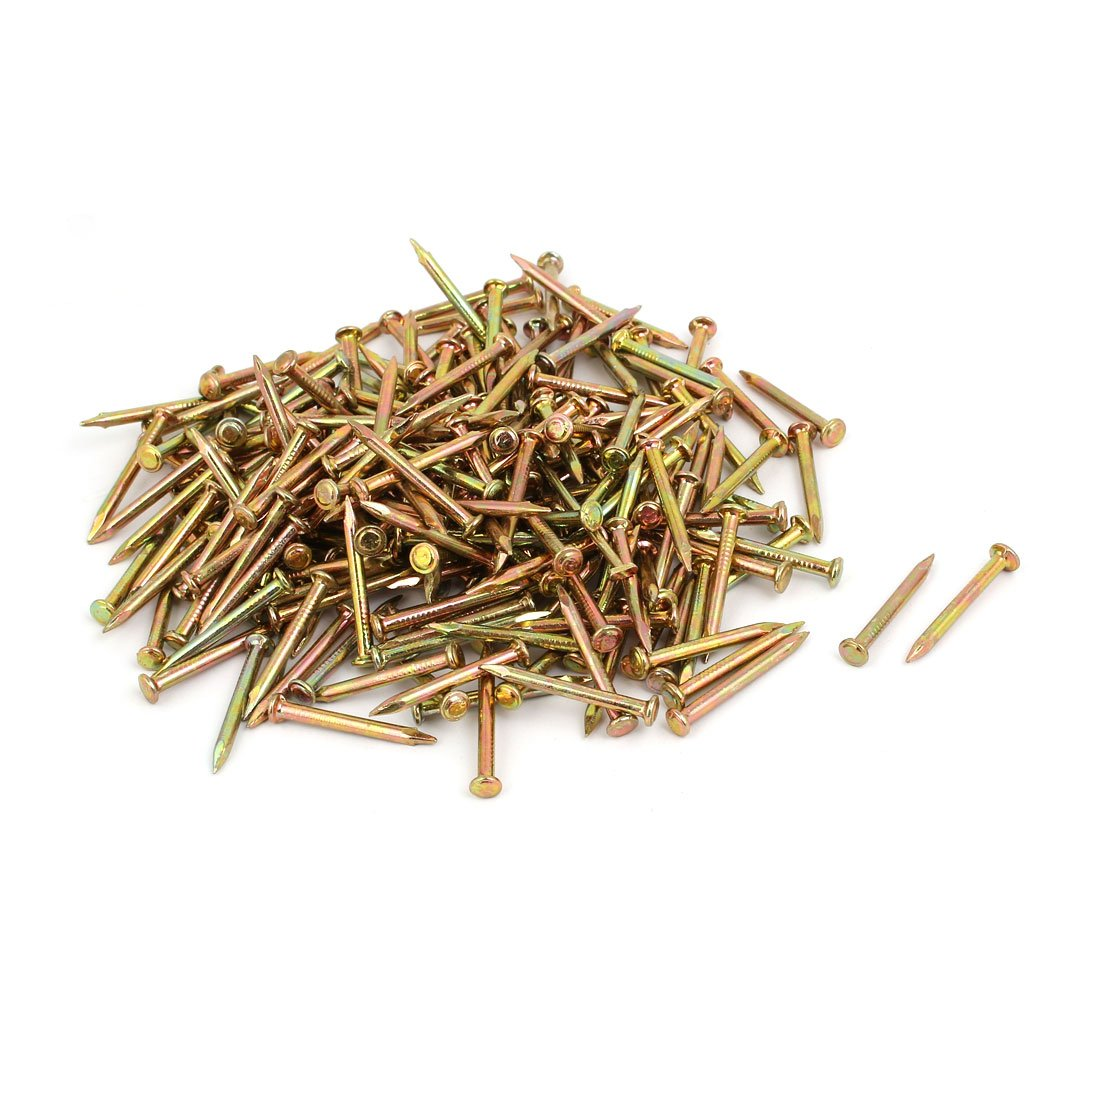 uxcell 300pcs 30mm Length Steel Point Tip Cement Nail Bronze Tone